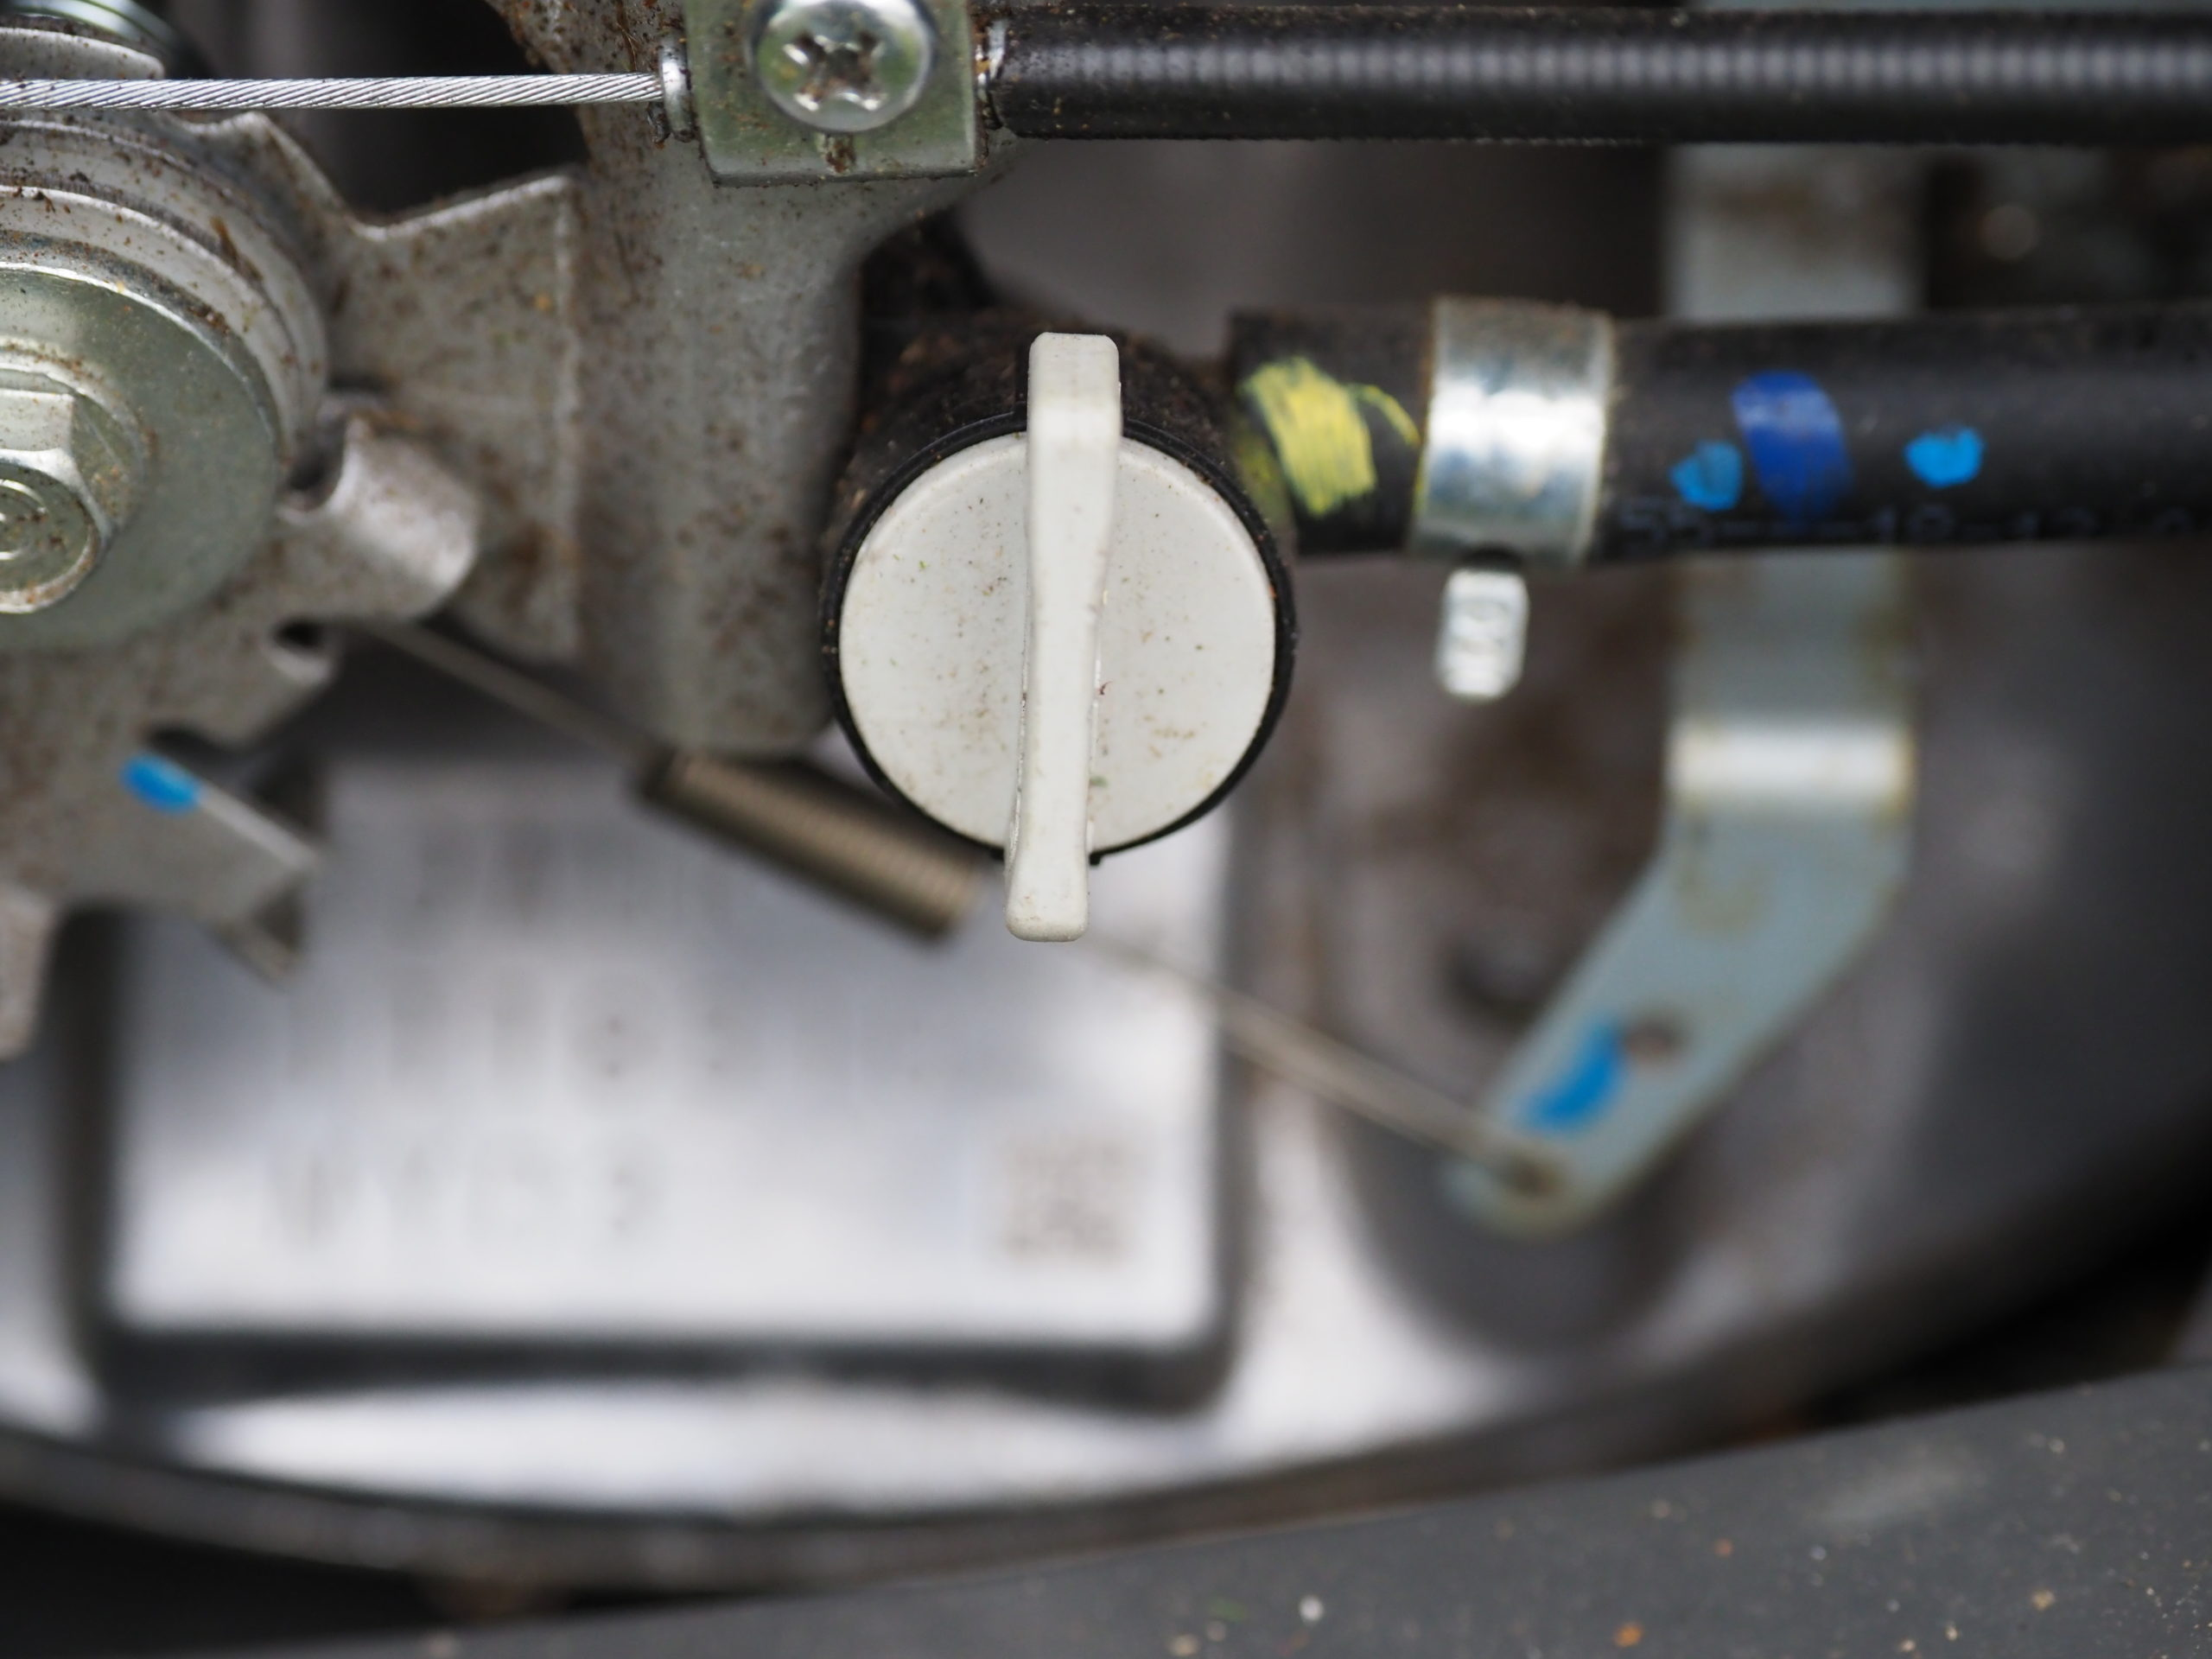 Only about the size of a quarter, this valve can save you a bundle. It's the fuel turn-off valve on a Honda lawn mower. In the vertical position it stops the fuel flow, thus burning off all the fuel in the engine so it can't do damage over the winter. The fuel in the tank is either emptied or treated and the valve left closed until spring start up.